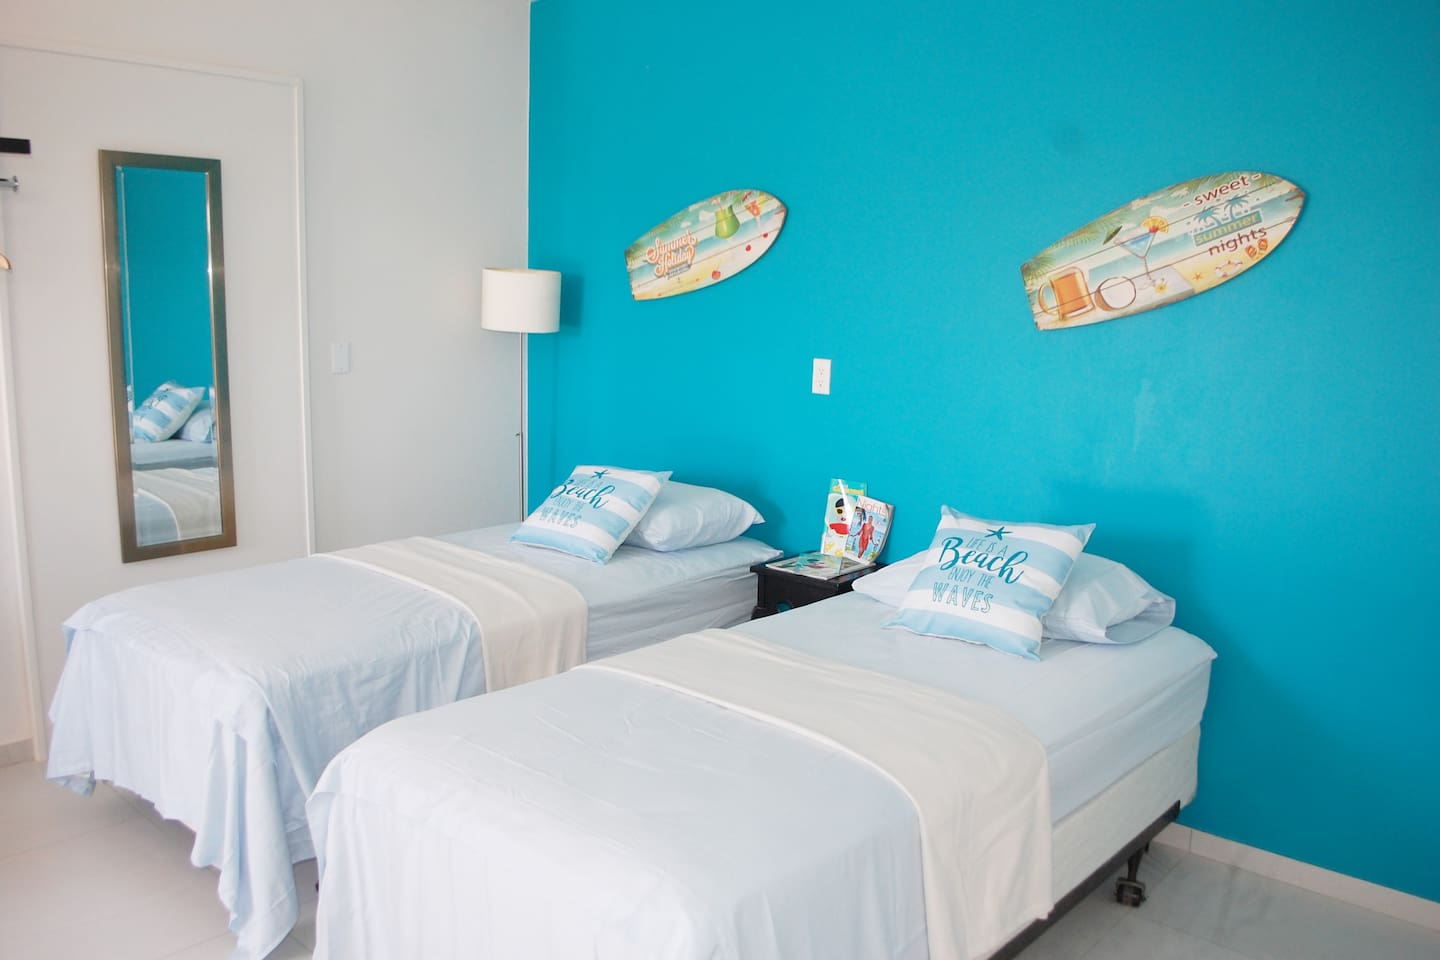 Flip Flop cozy Apt #84 - Apartments for Rent in Palm Beach/Eagle ...